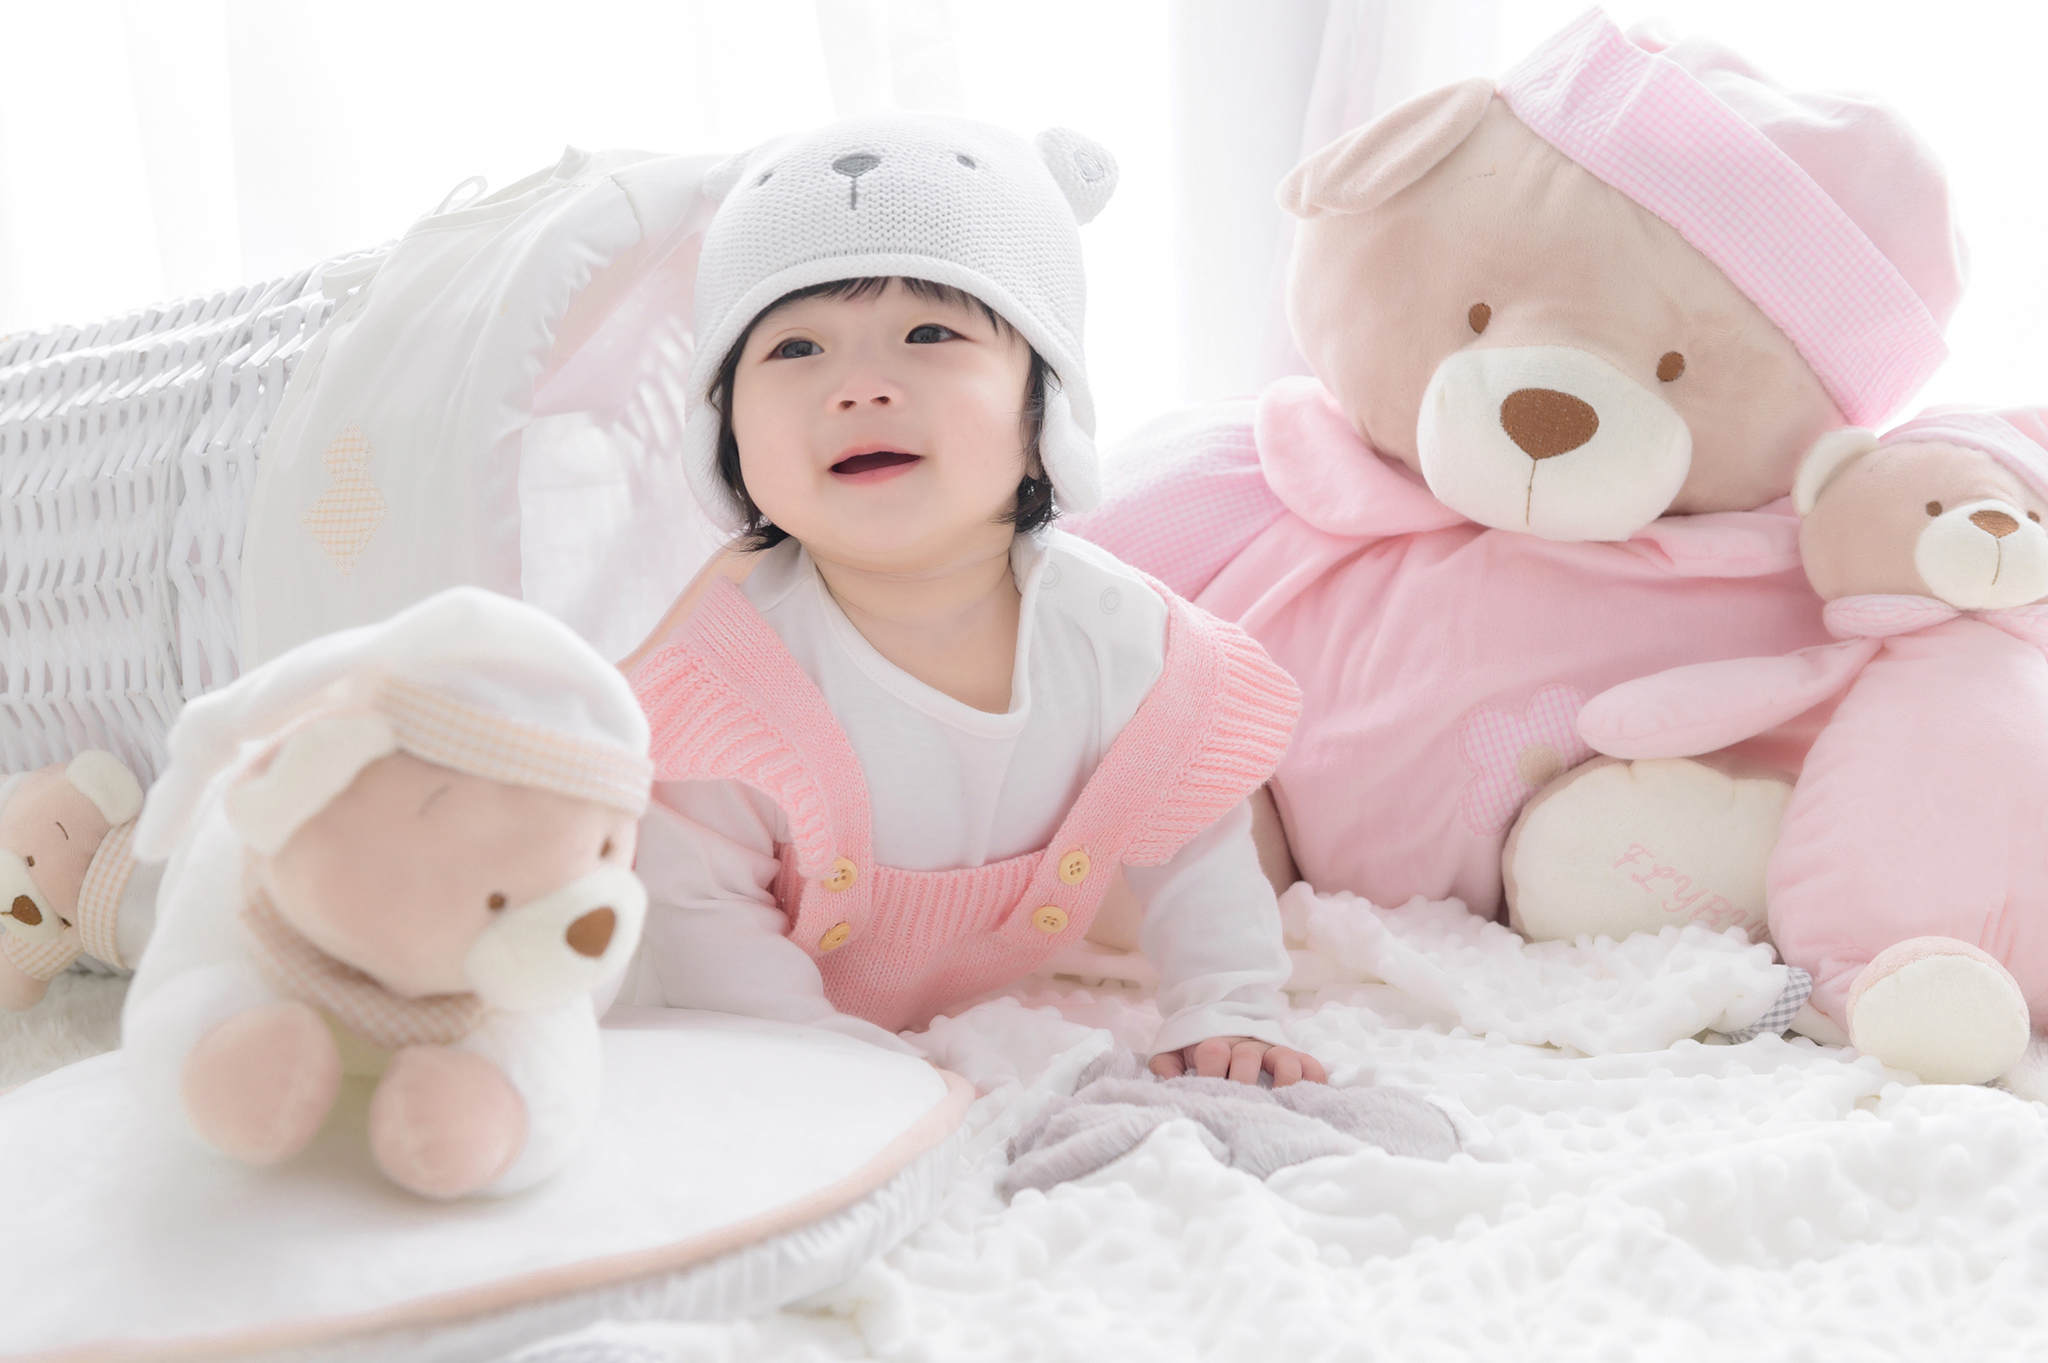 FLYBYFLY   Premium Quality Baby and Kids Products   Stuffed Animals